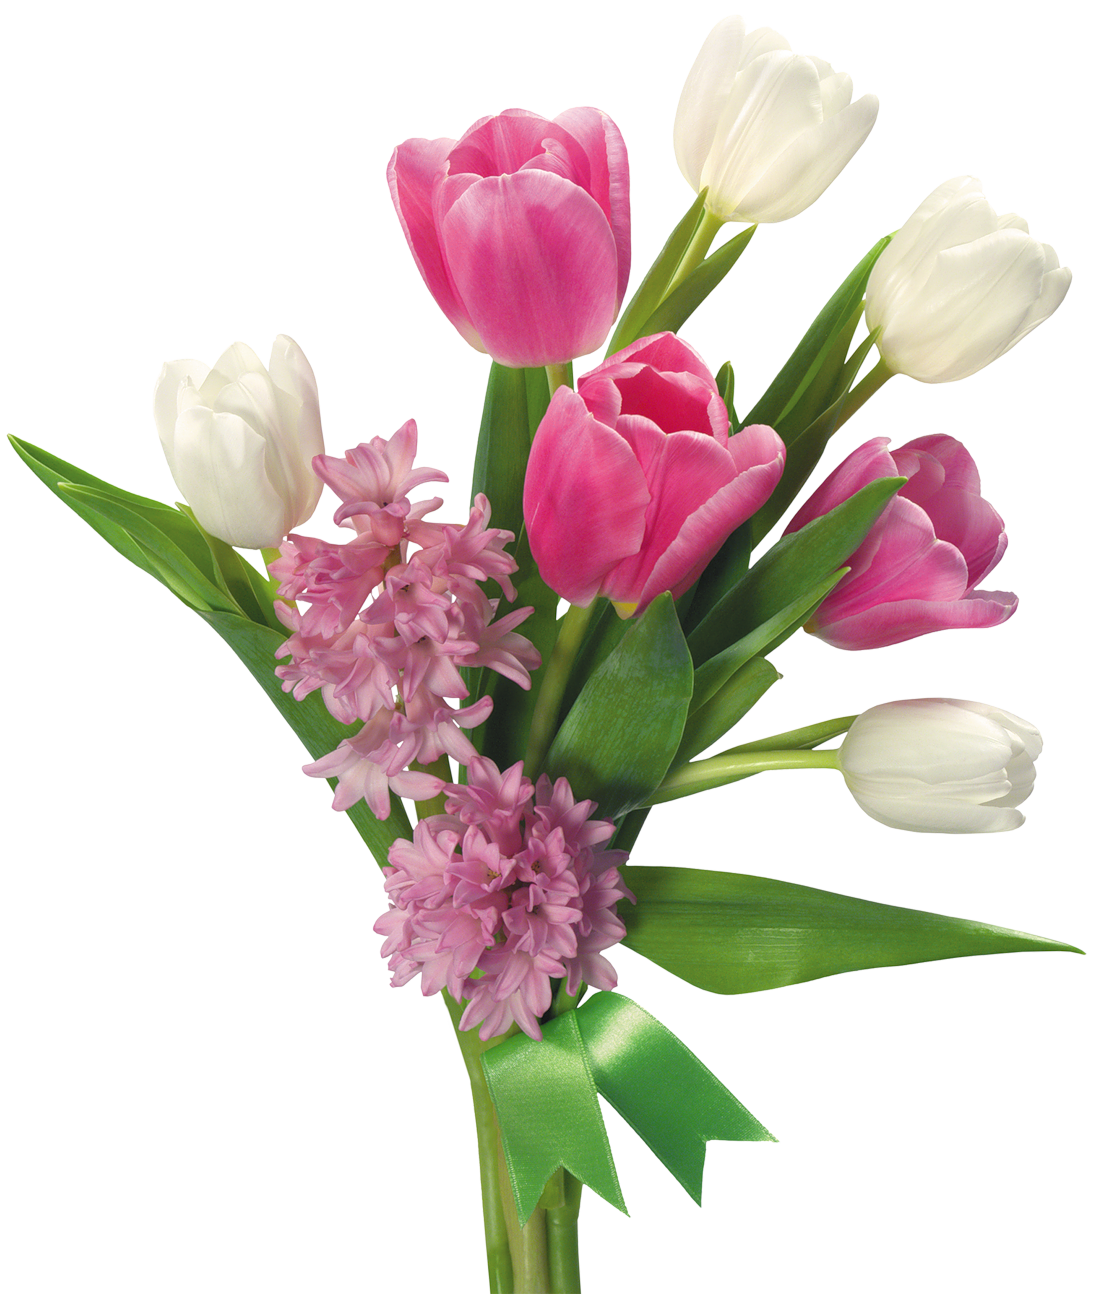 transparent download Spring Bouquet of Tulips and Hyacinths PNG Transparent Picture